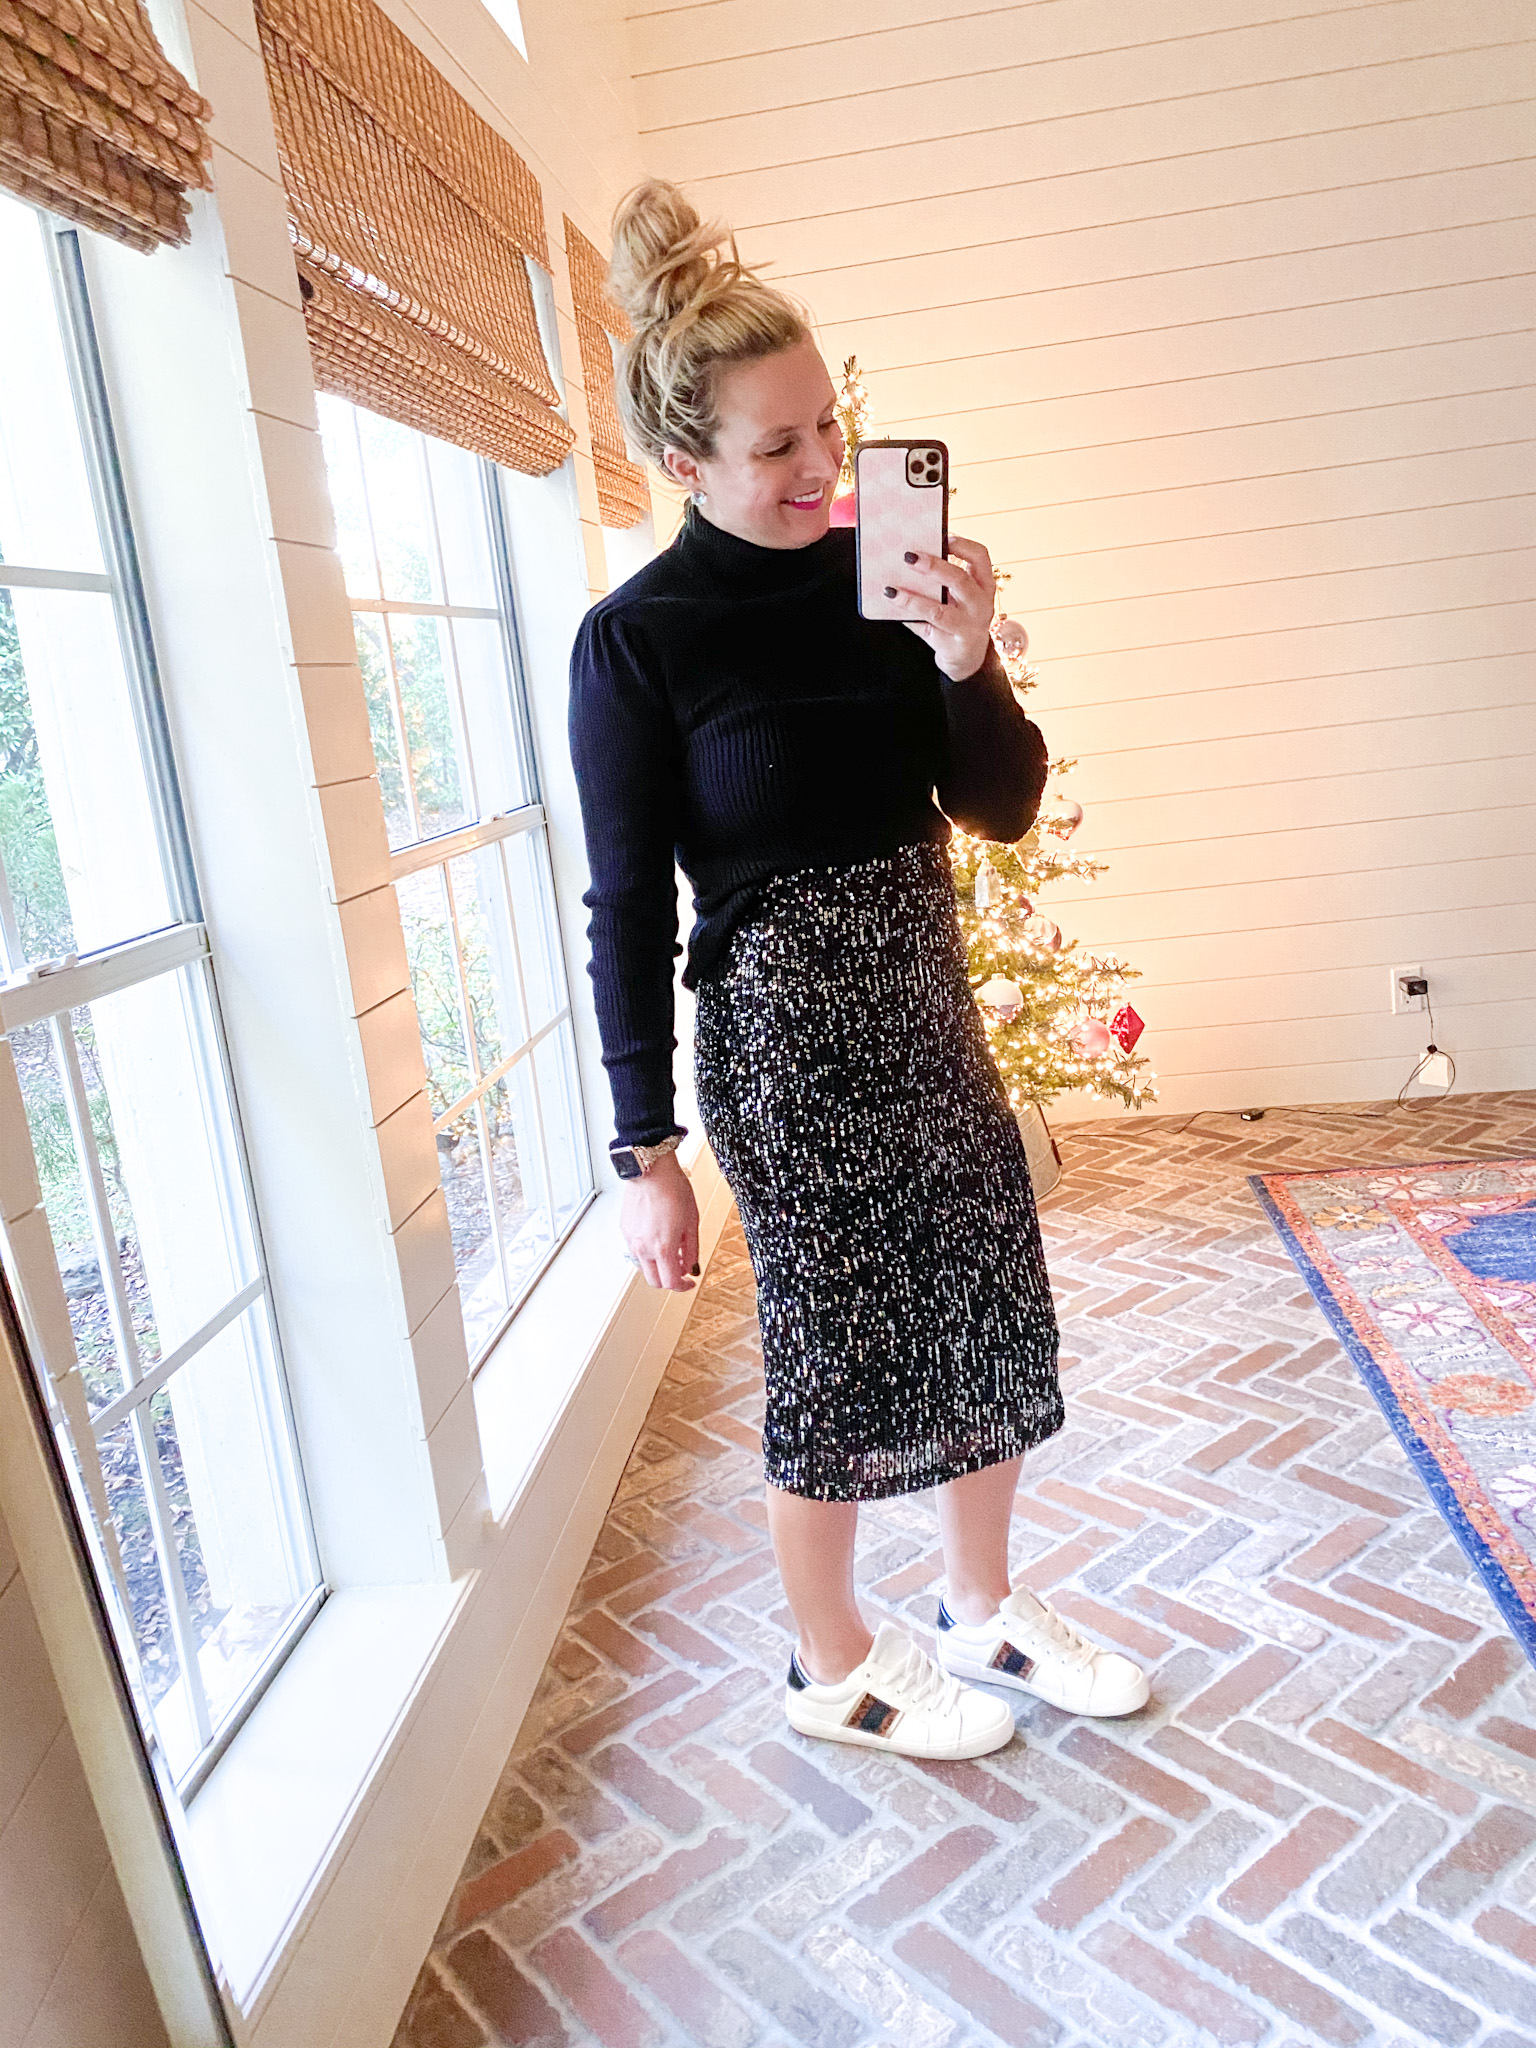 Walmart Womens Clothes by popular Houston fashion blog, Fancy Ashley: image of a woman wearing a Walmart Scoop Women's Mock Neck Top with Ruched Sleeves, Walmart Scoop Sequin skirt, and Walmart white sneakers.